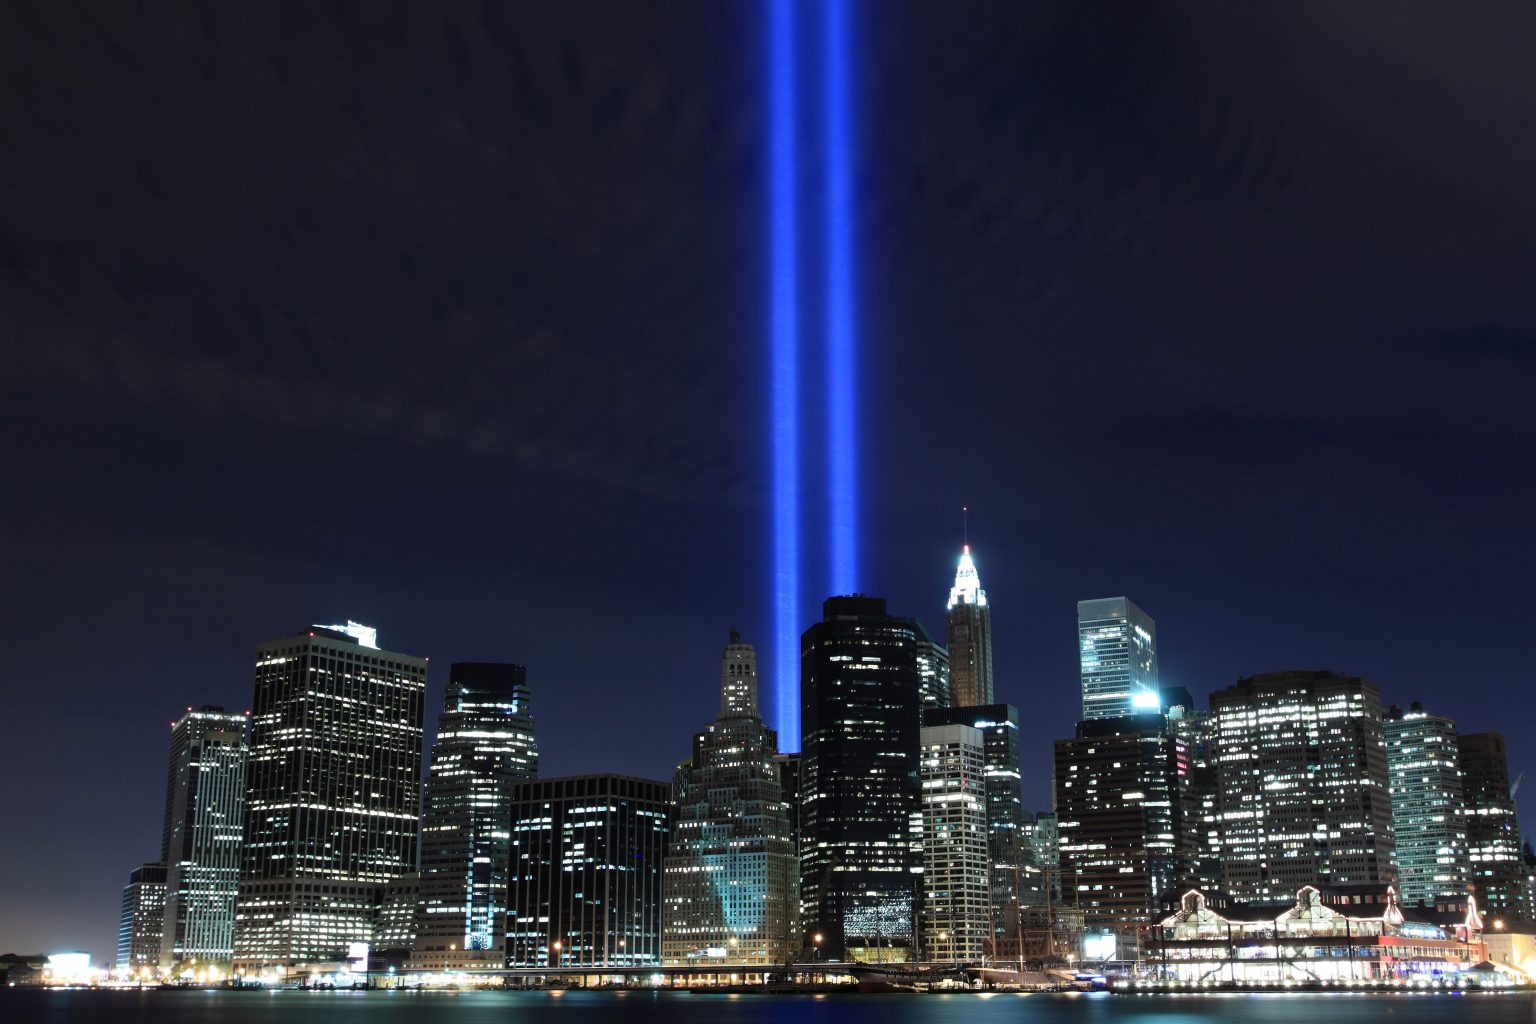 New York City changes course, will now allow Tribute in Light to shine on 9/11